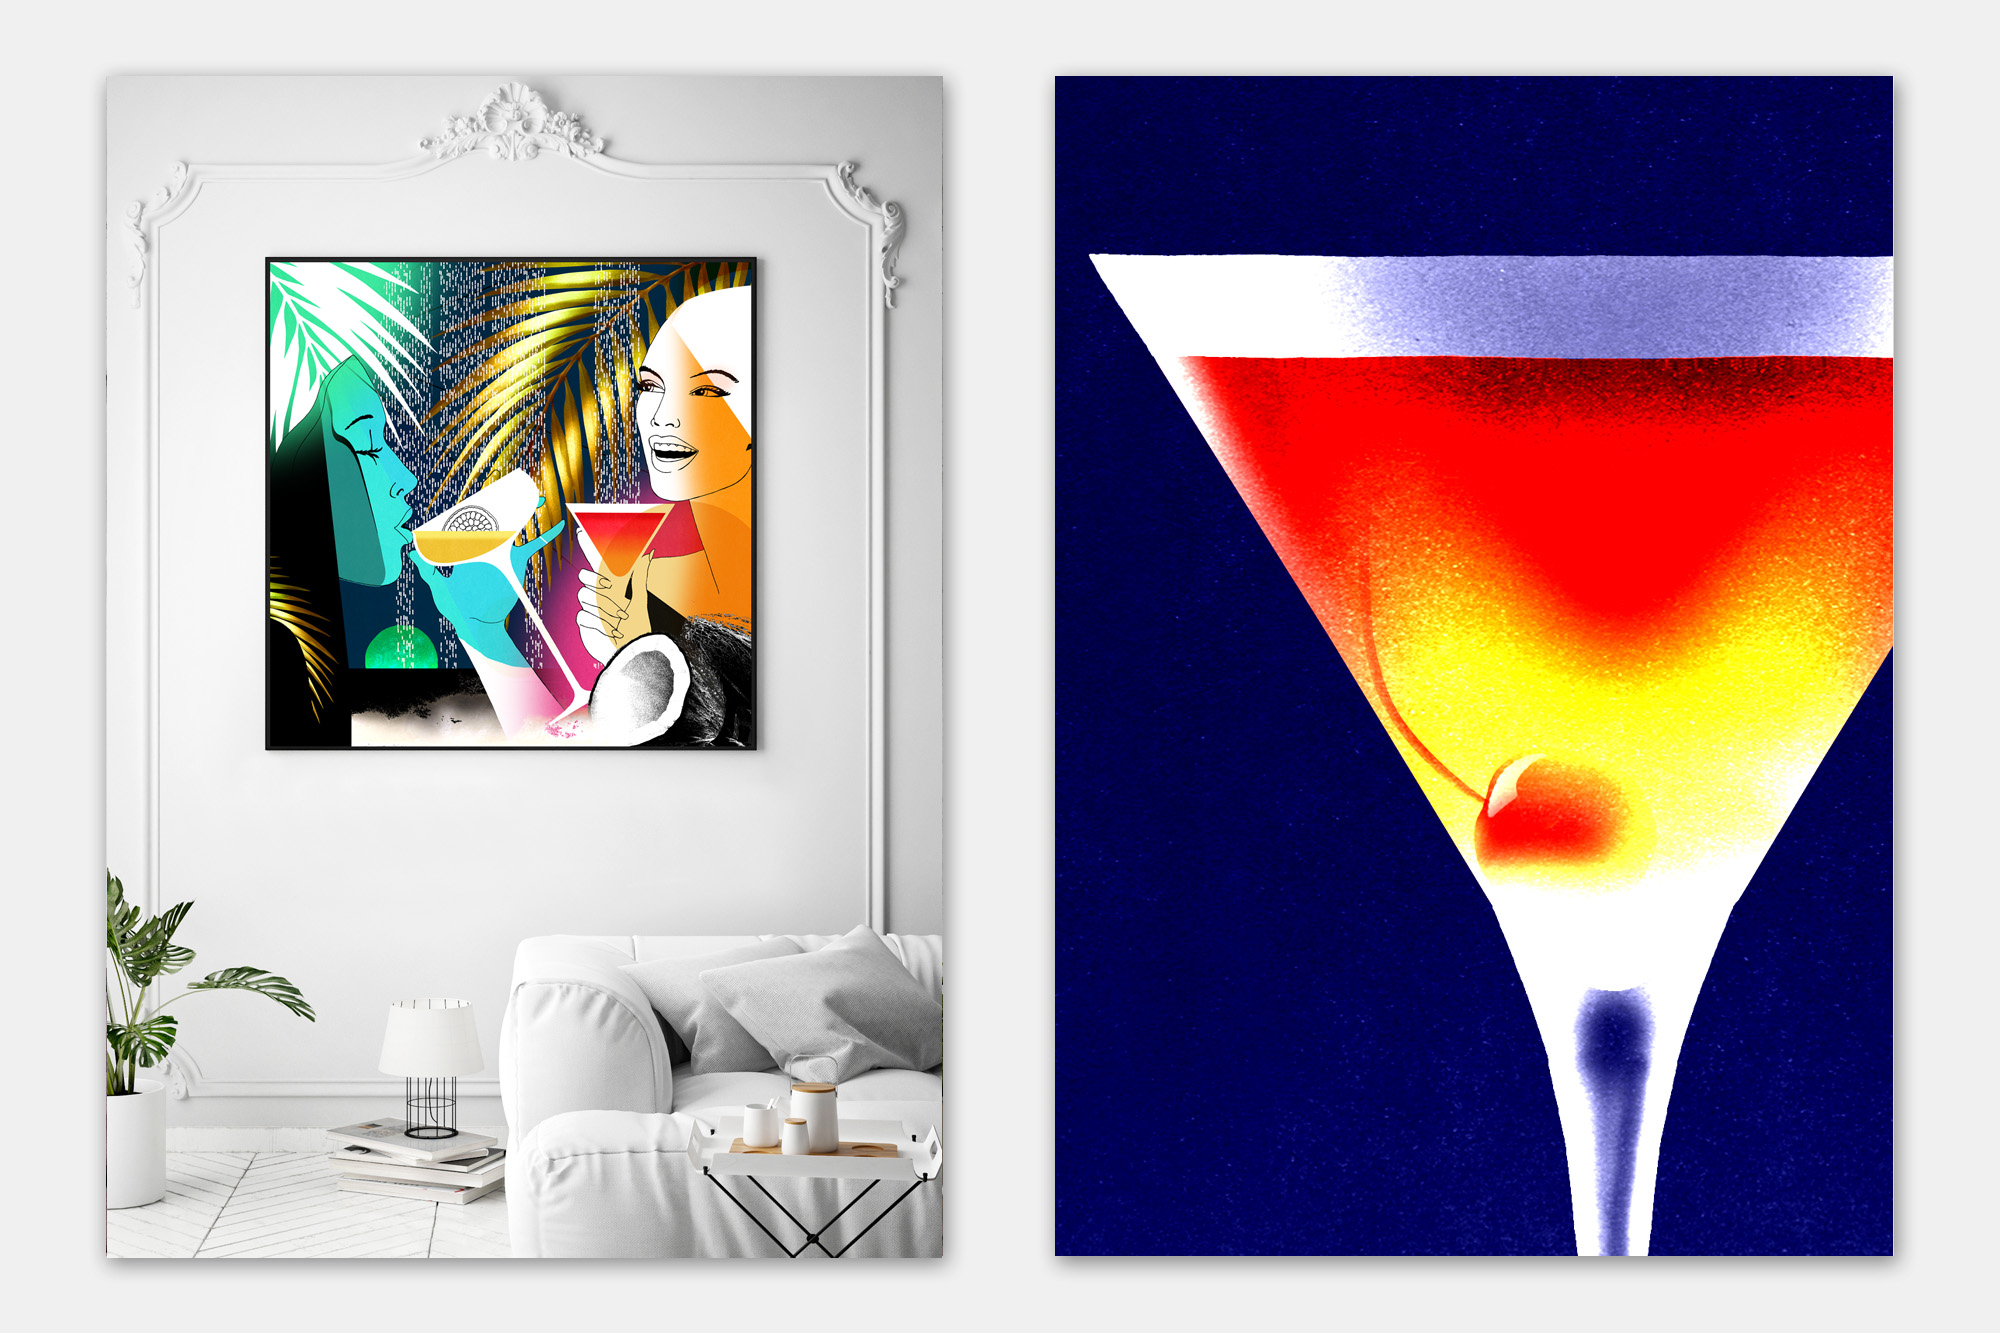 nick-purser-ikon-drink-illustration-i